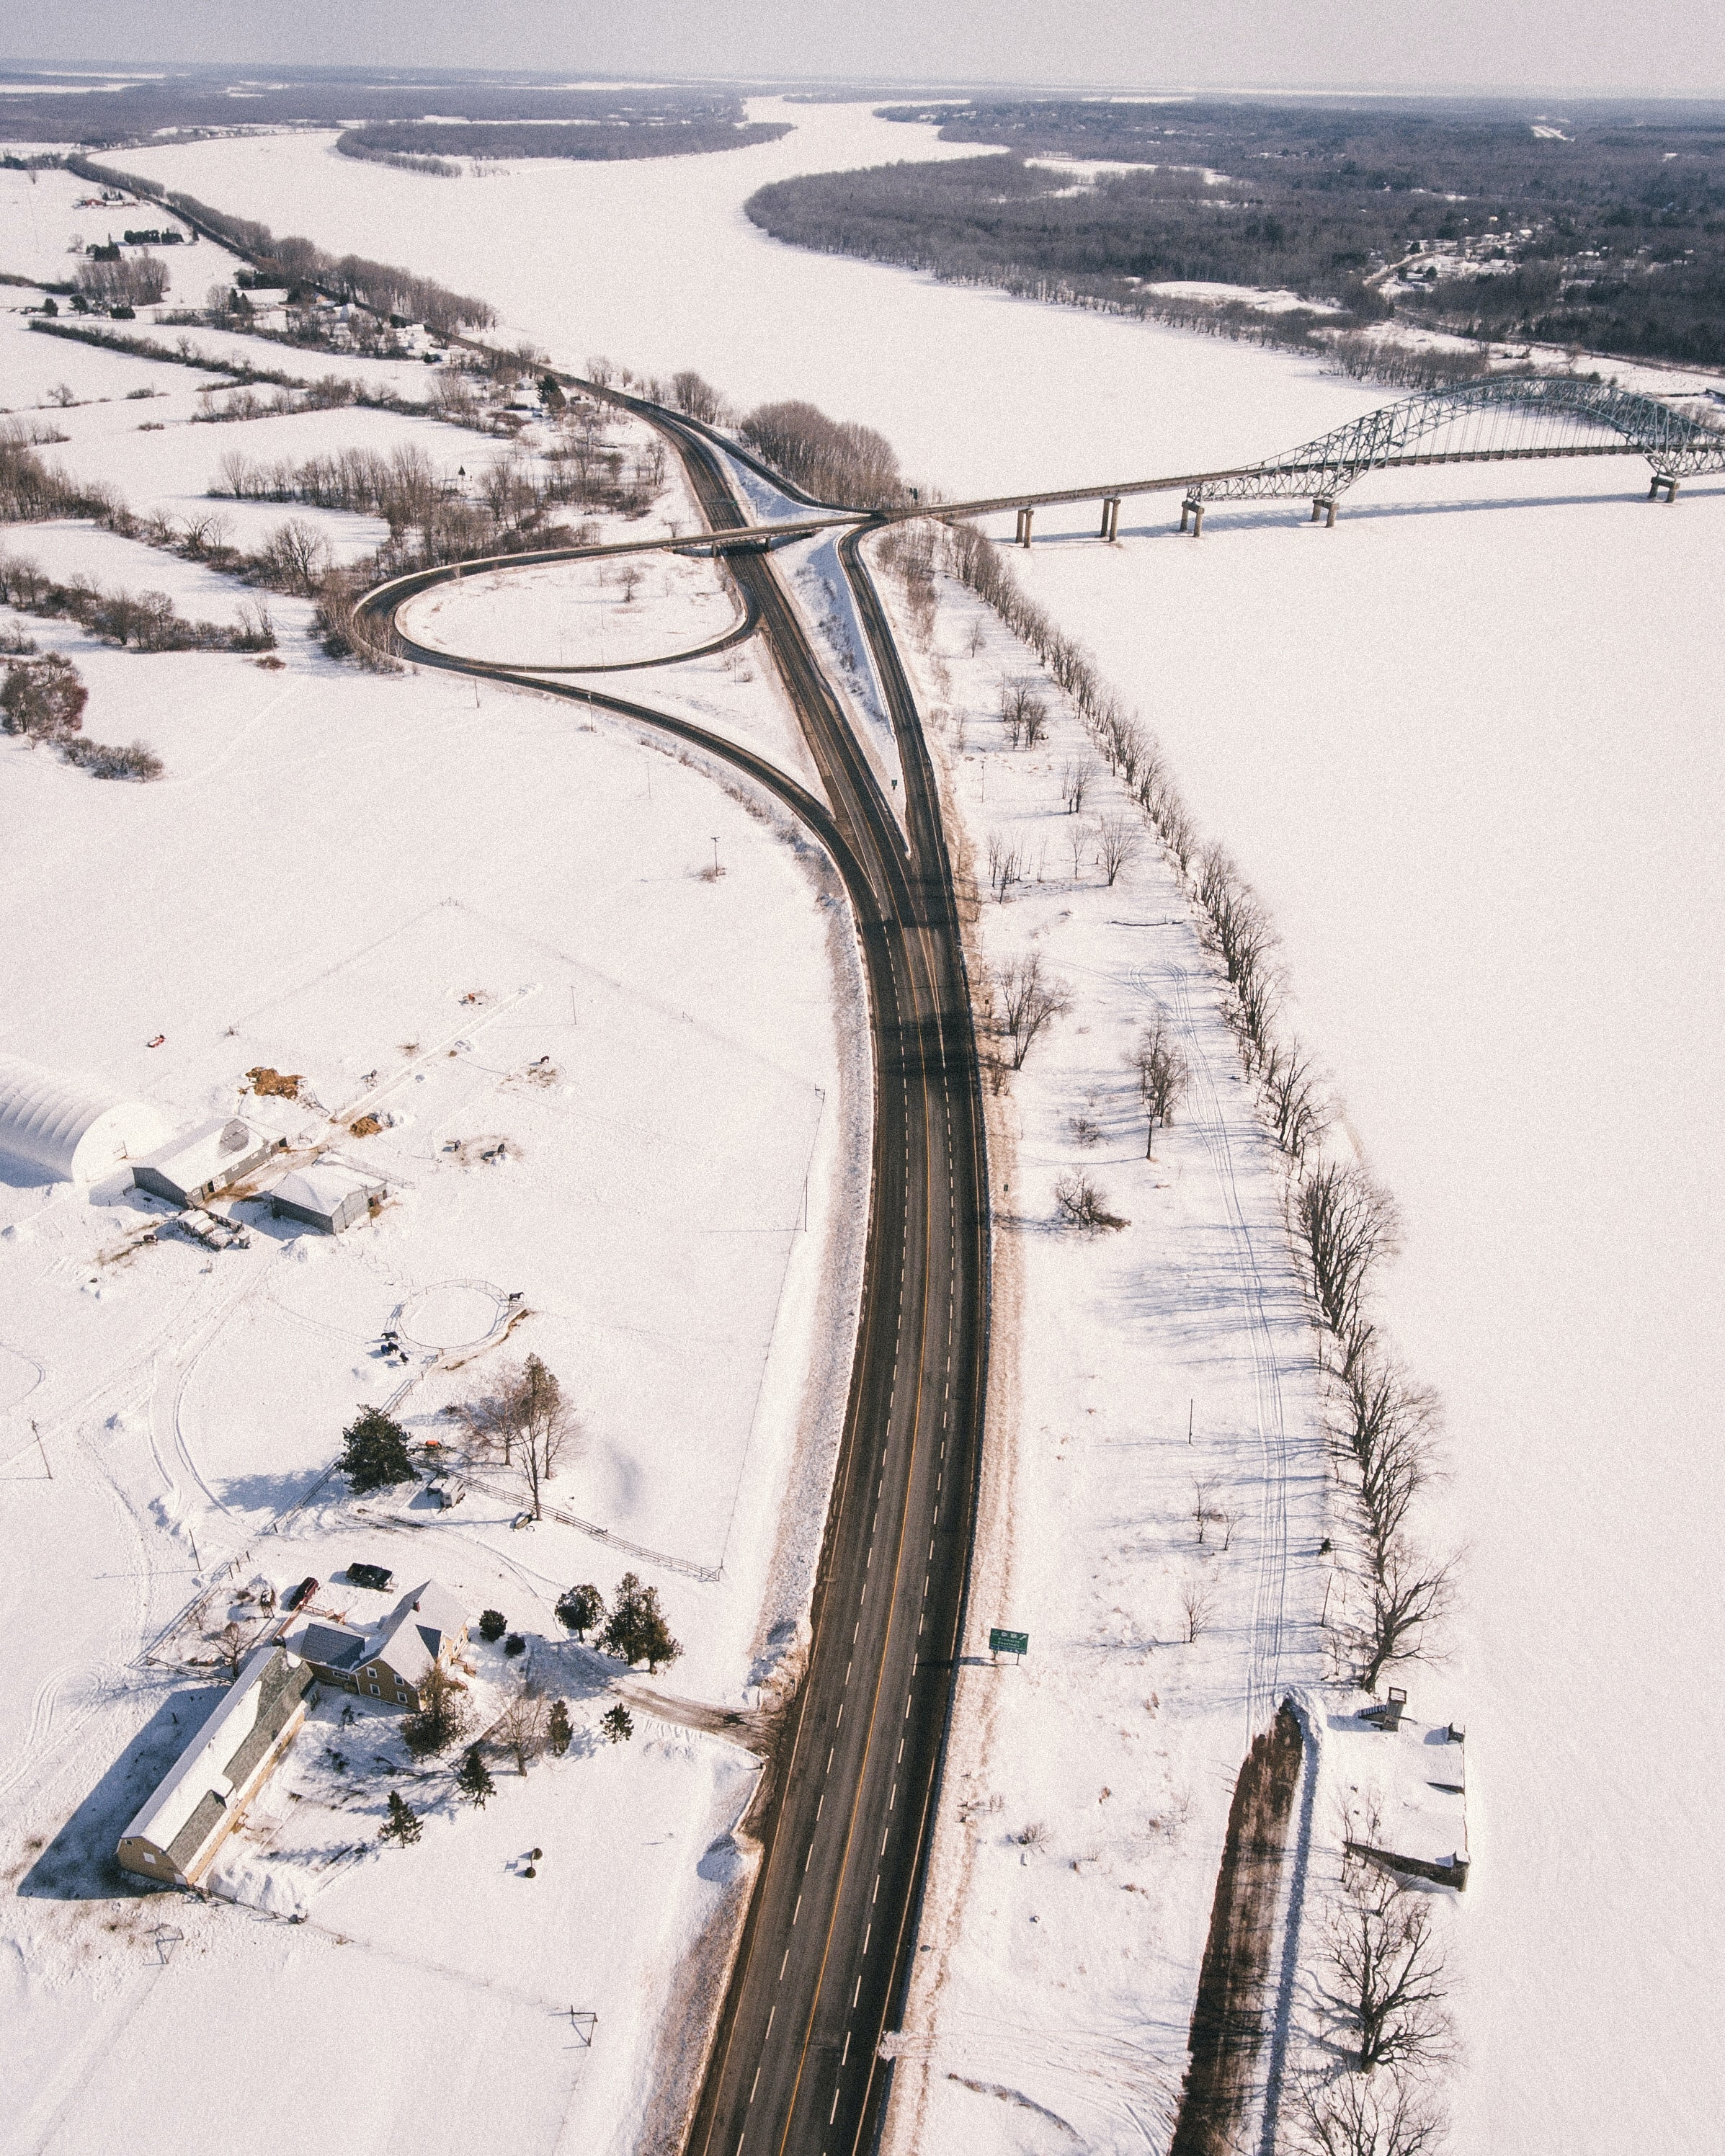 aerial view of road surrounded by white snows